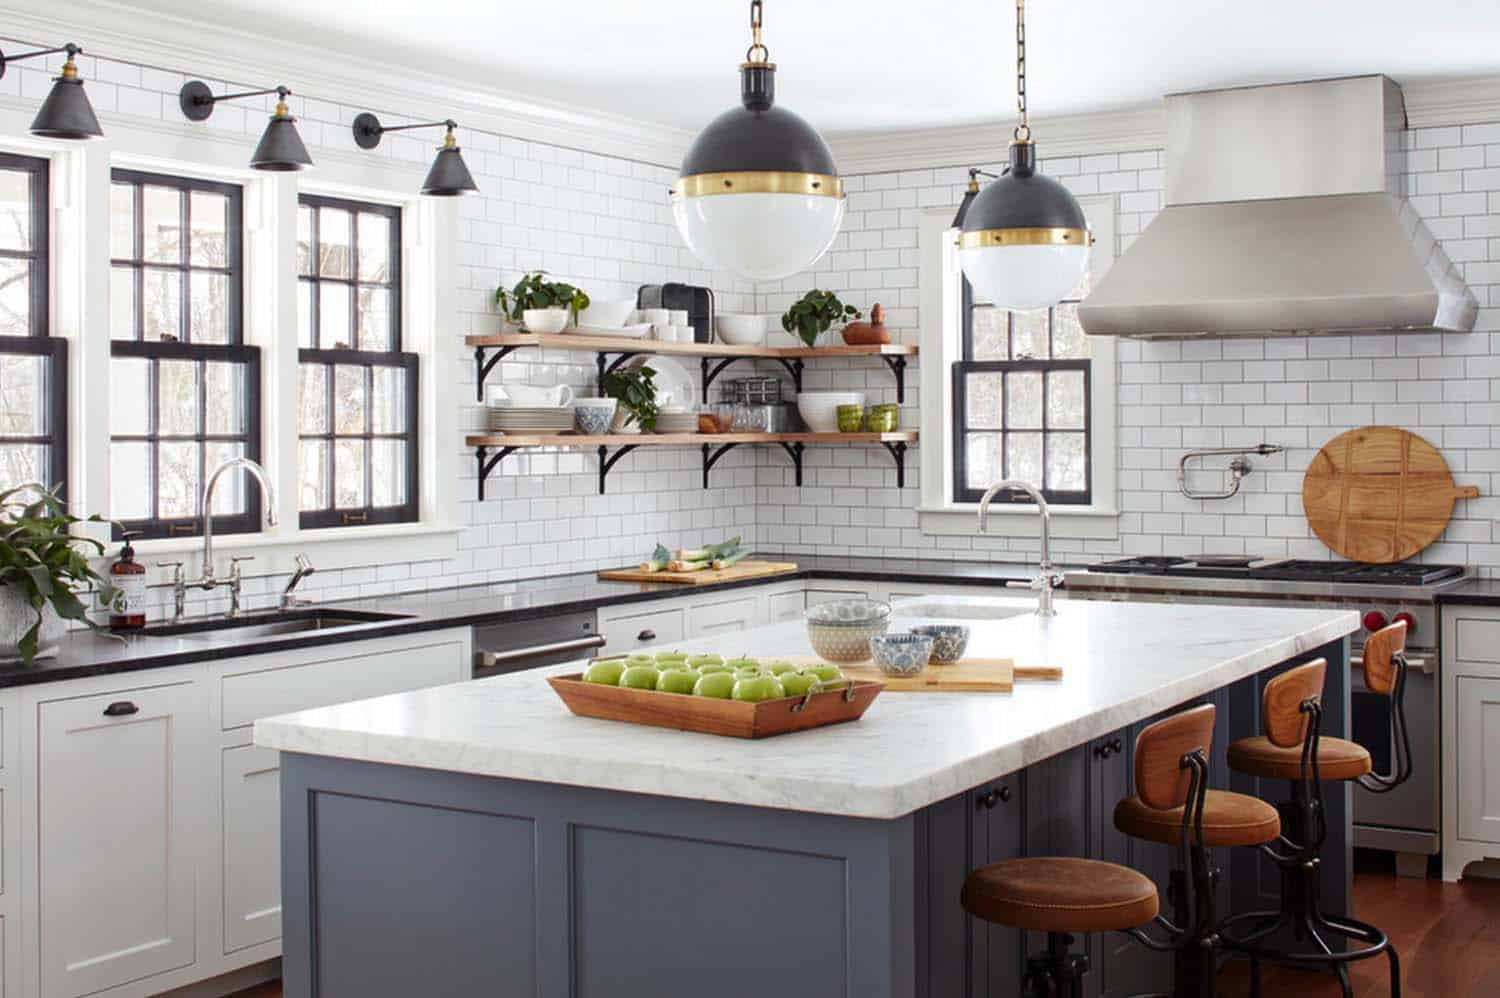 Farmhouse Style Home- Kristina Crestin Design-04-1 Kindesign